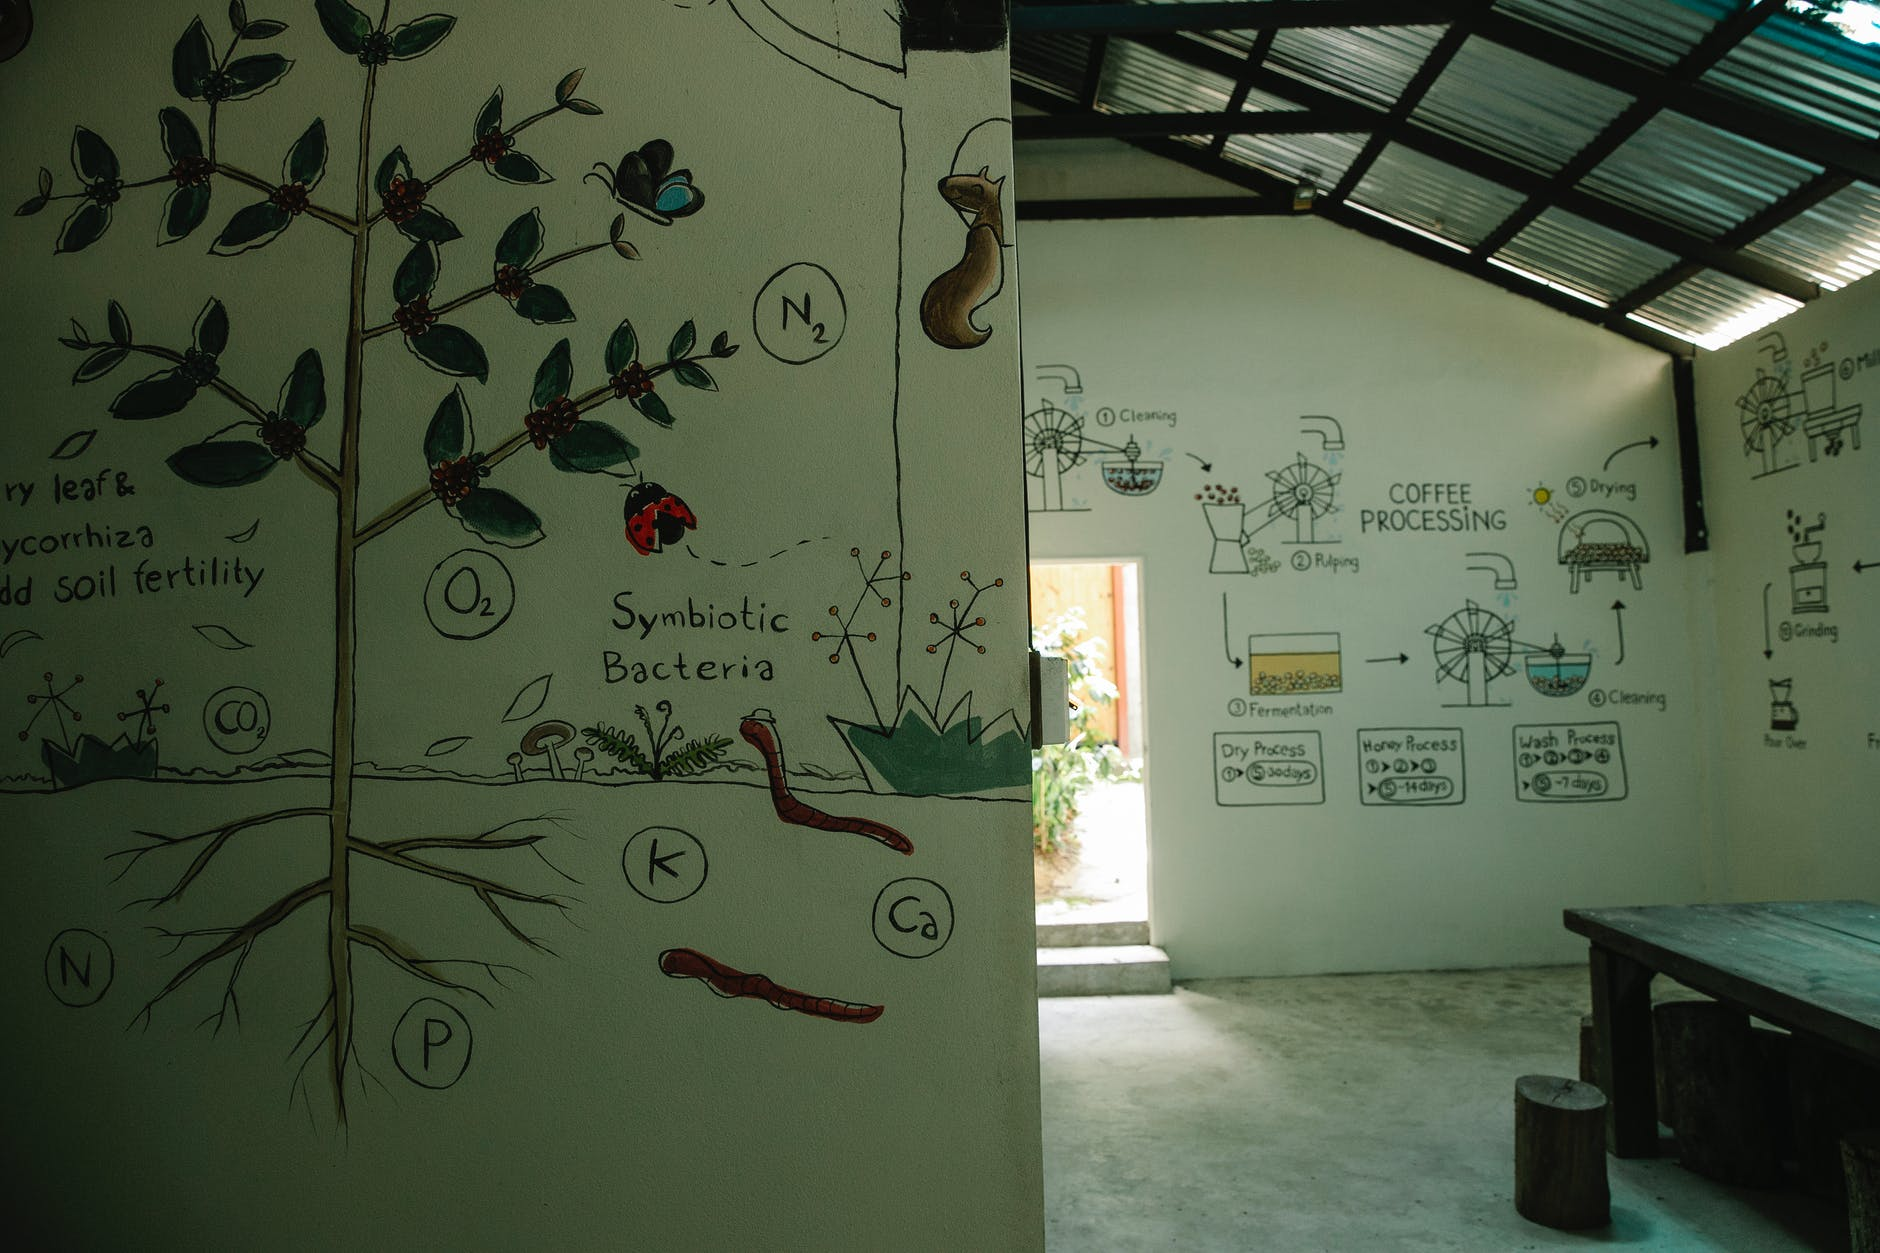 house with white walls decorated with pictures showing coffee processing